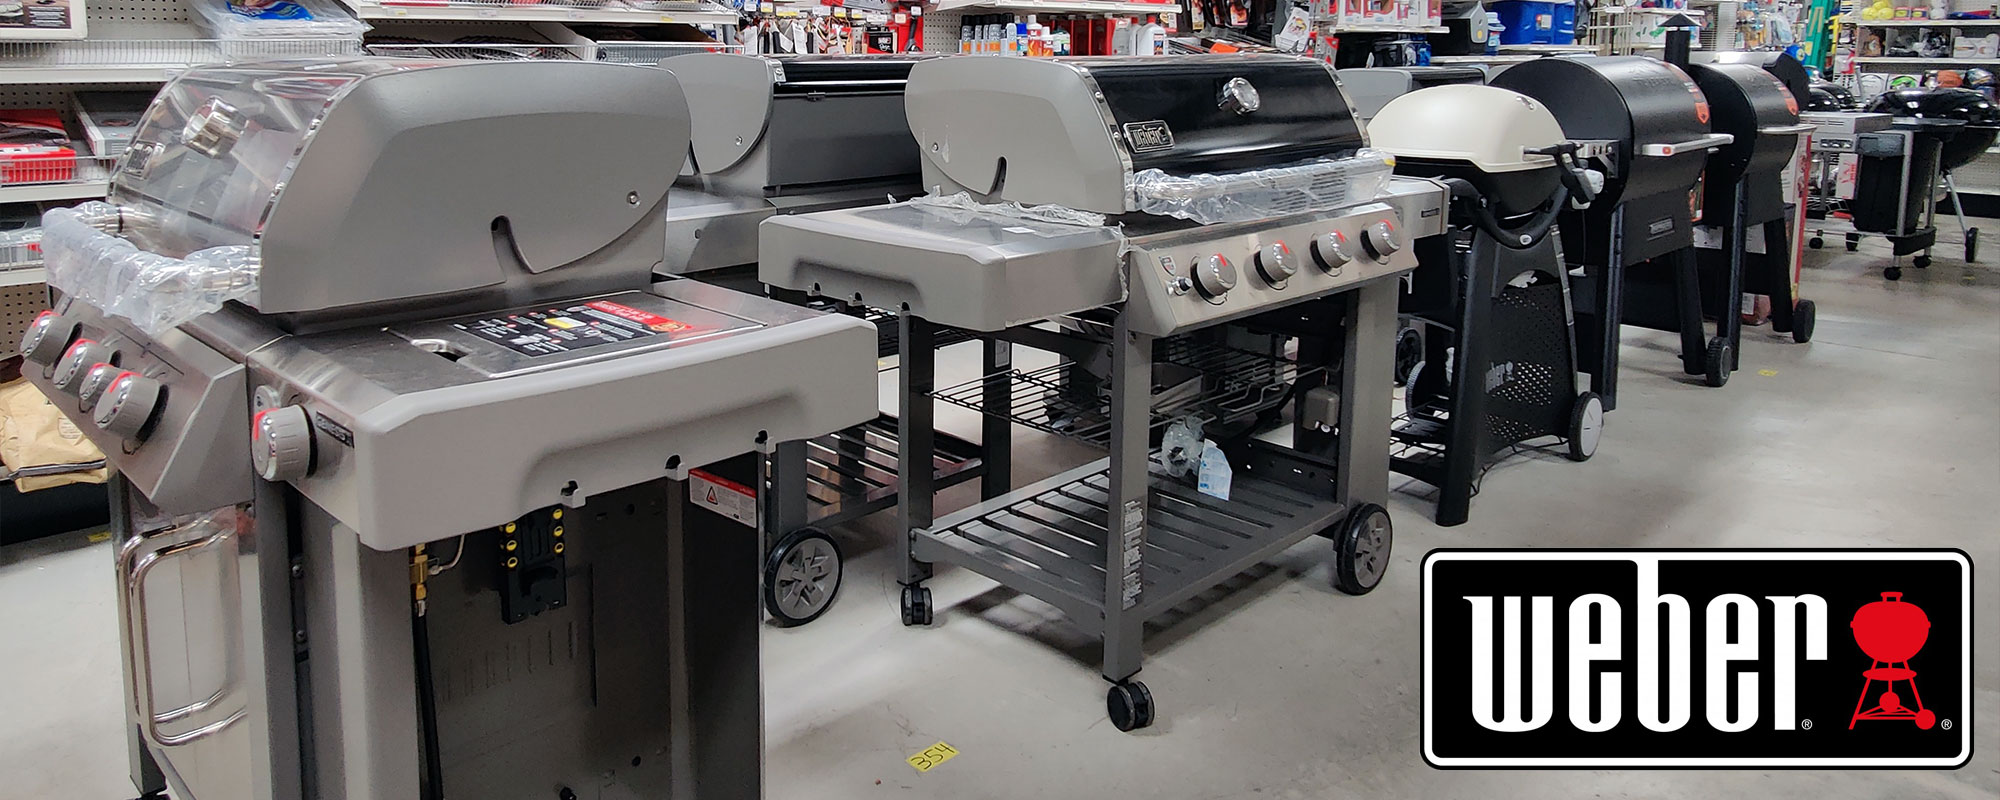 Shop and Buy Weber Grills and Accessories at Harbor Hardware Store in Door County, WI